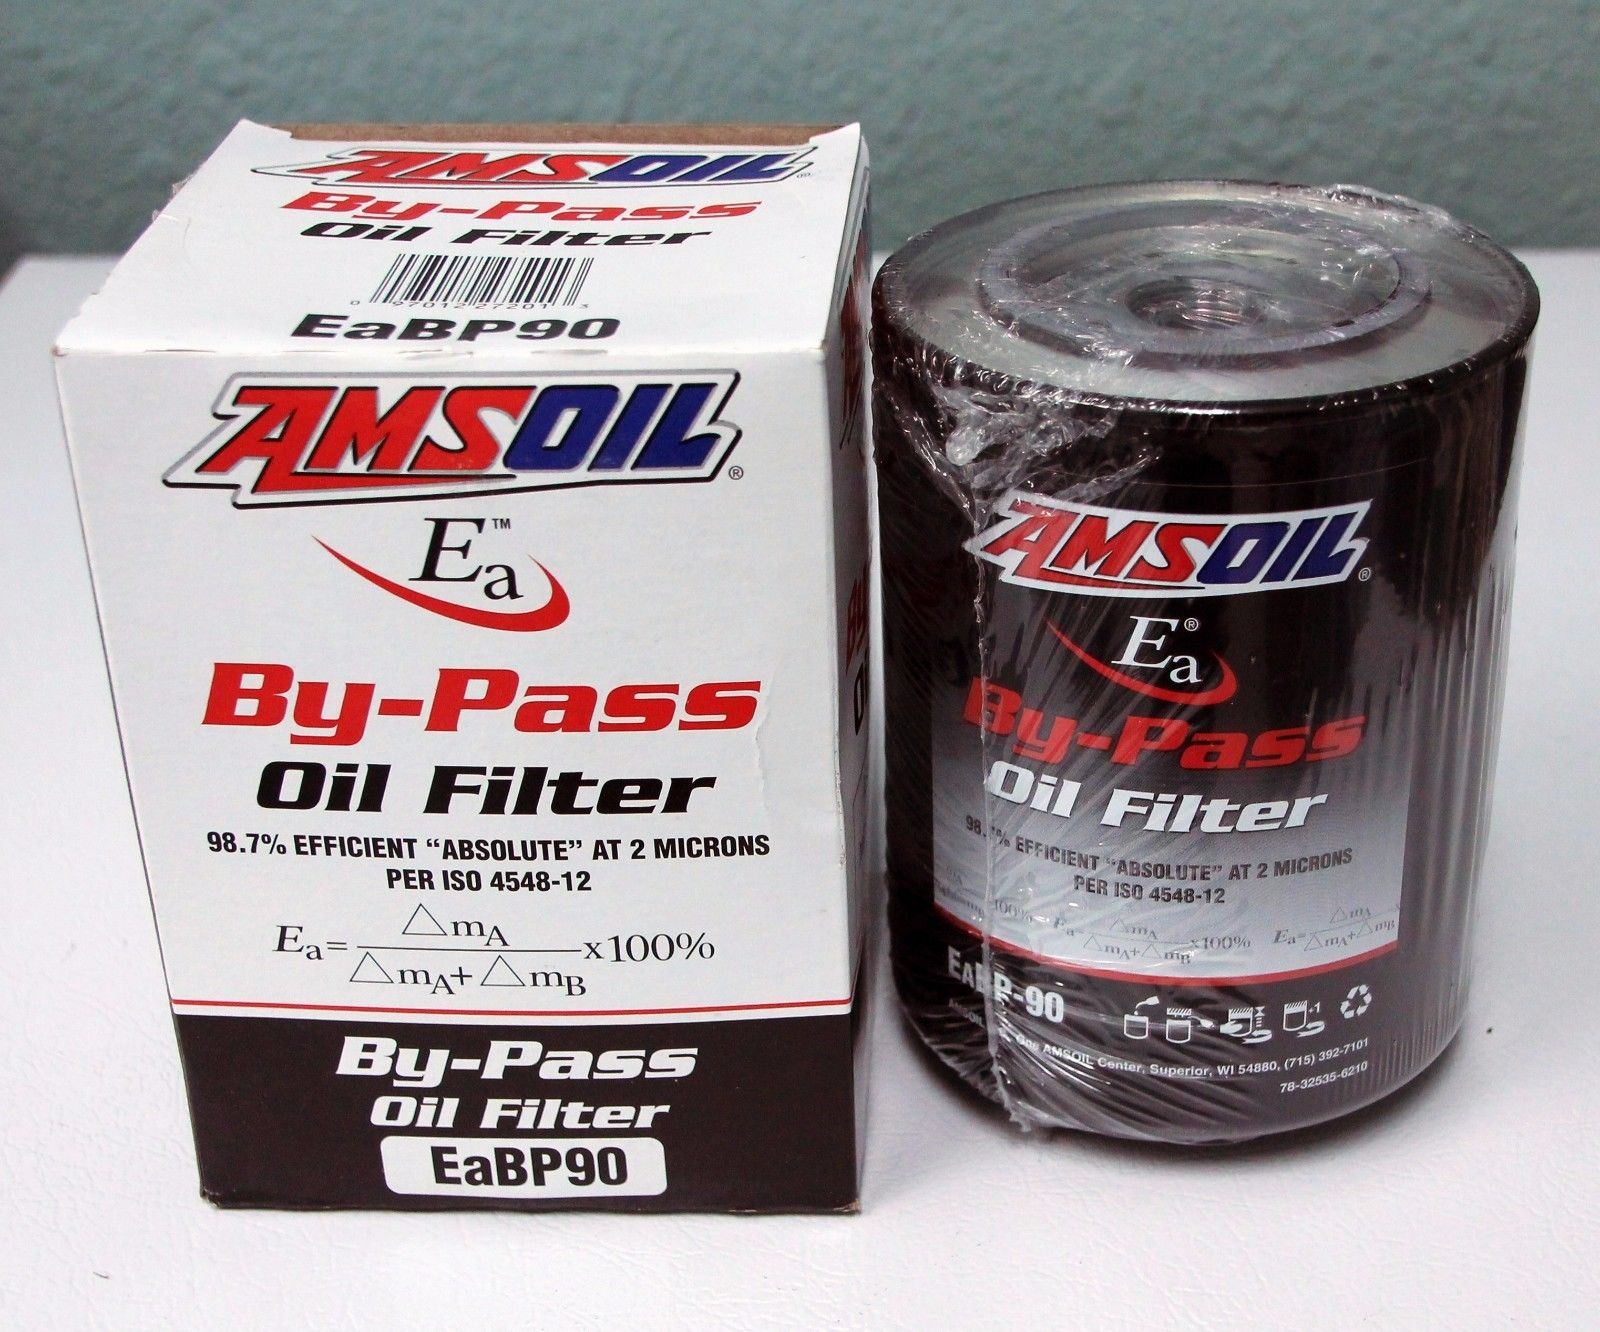 AMSOIL EaBP-90 bypass oil filter (3 PACK) replaces BE-90, BE-100, BE-110 097012272013